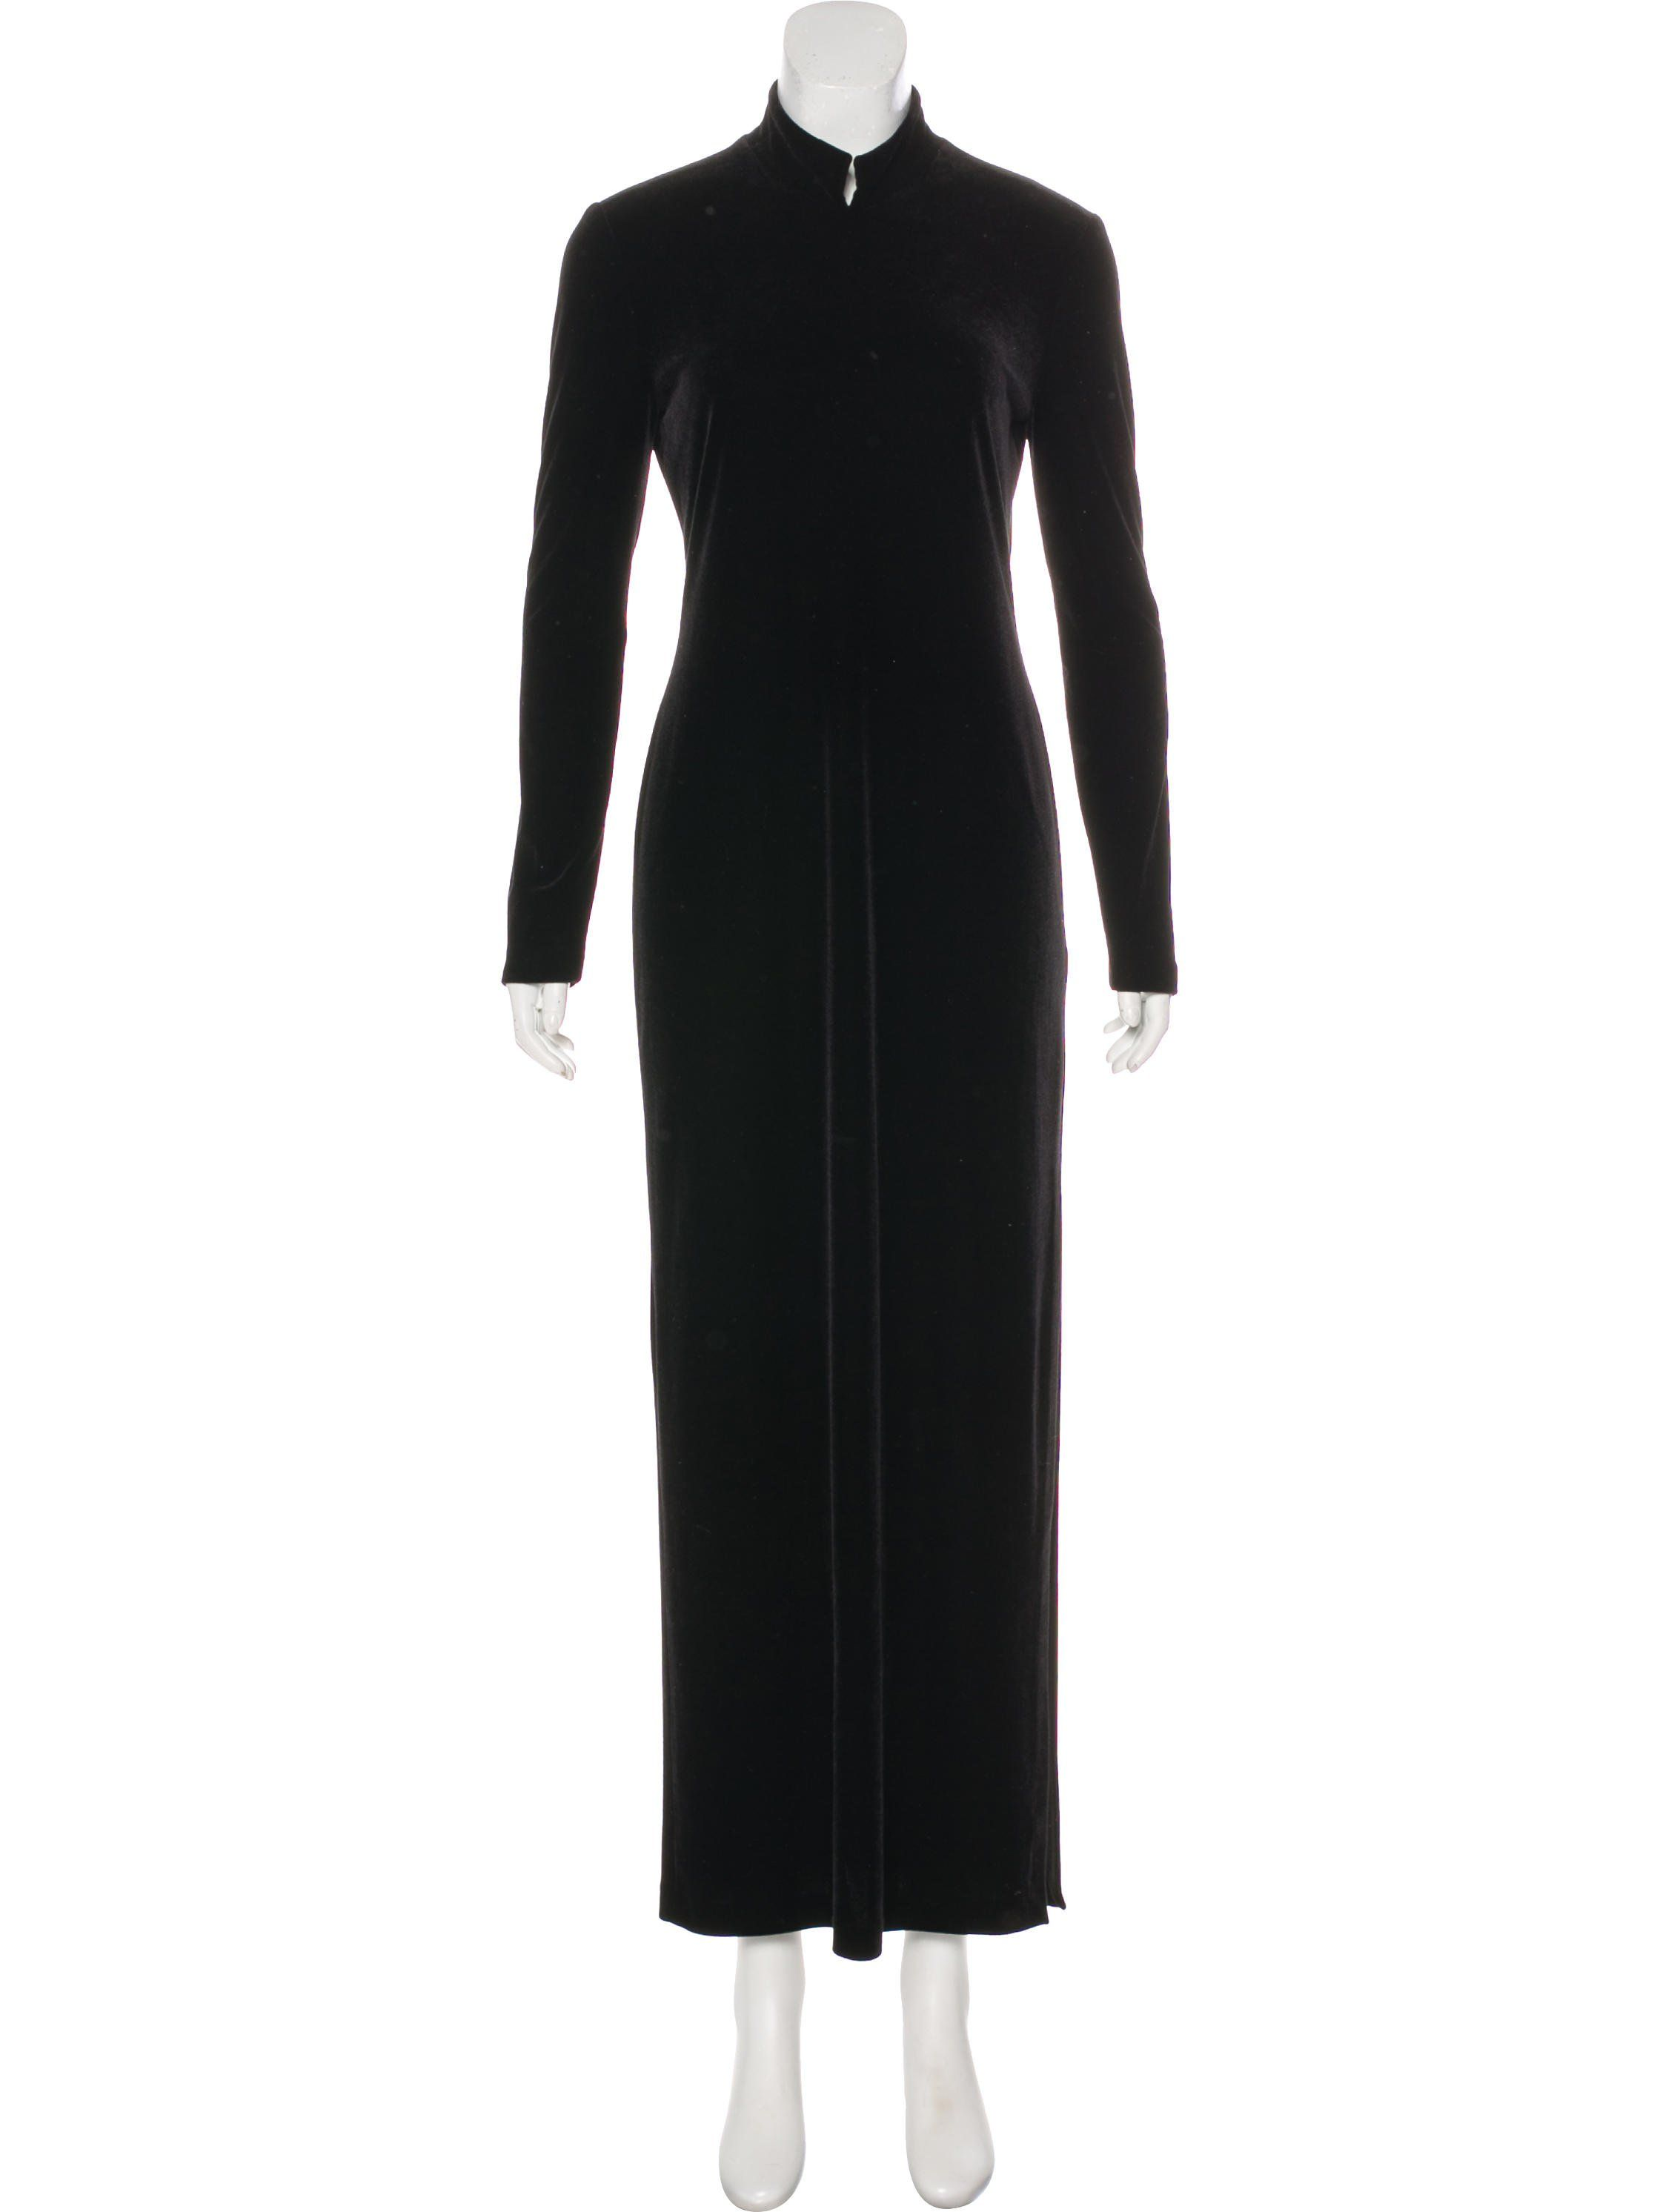 Black yeohlee long sleeve velvet maxi dress featuring tonal